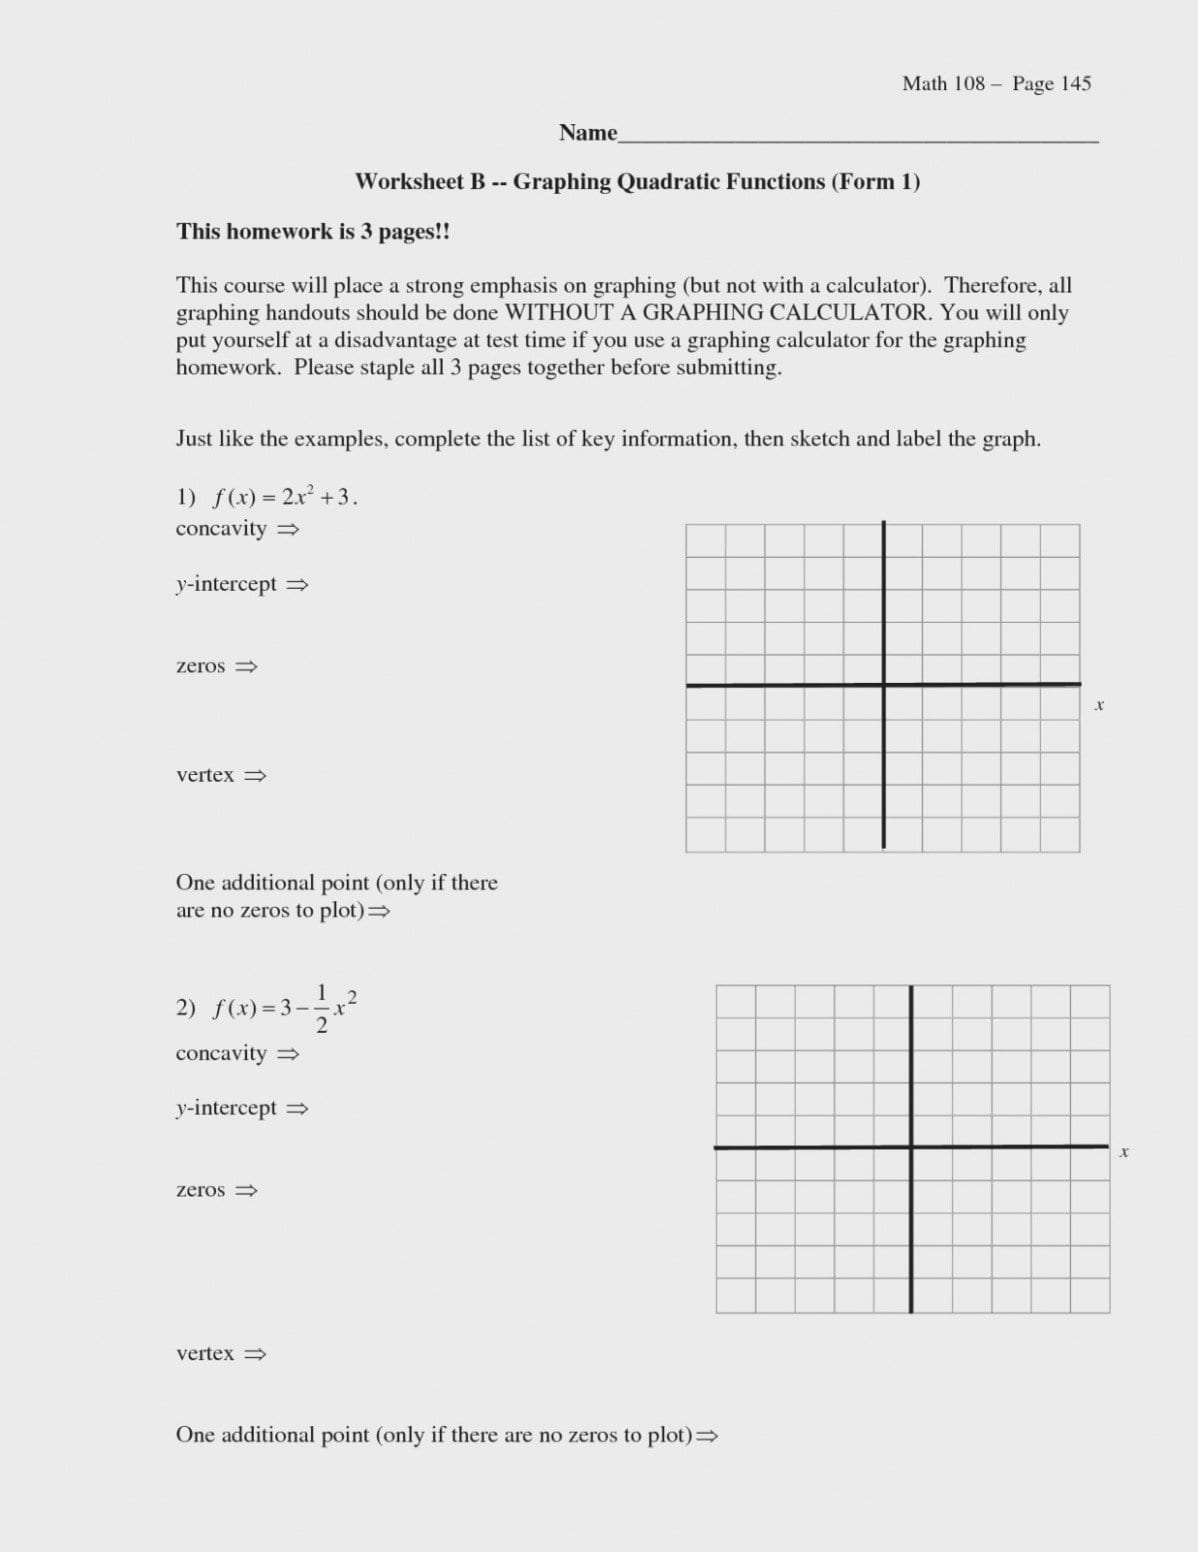 Practice Worksheet Graphing Quadratic Functions In Standard Form The As Well As Practice Worksheet Graphing Quadratic Functions In Standard Form